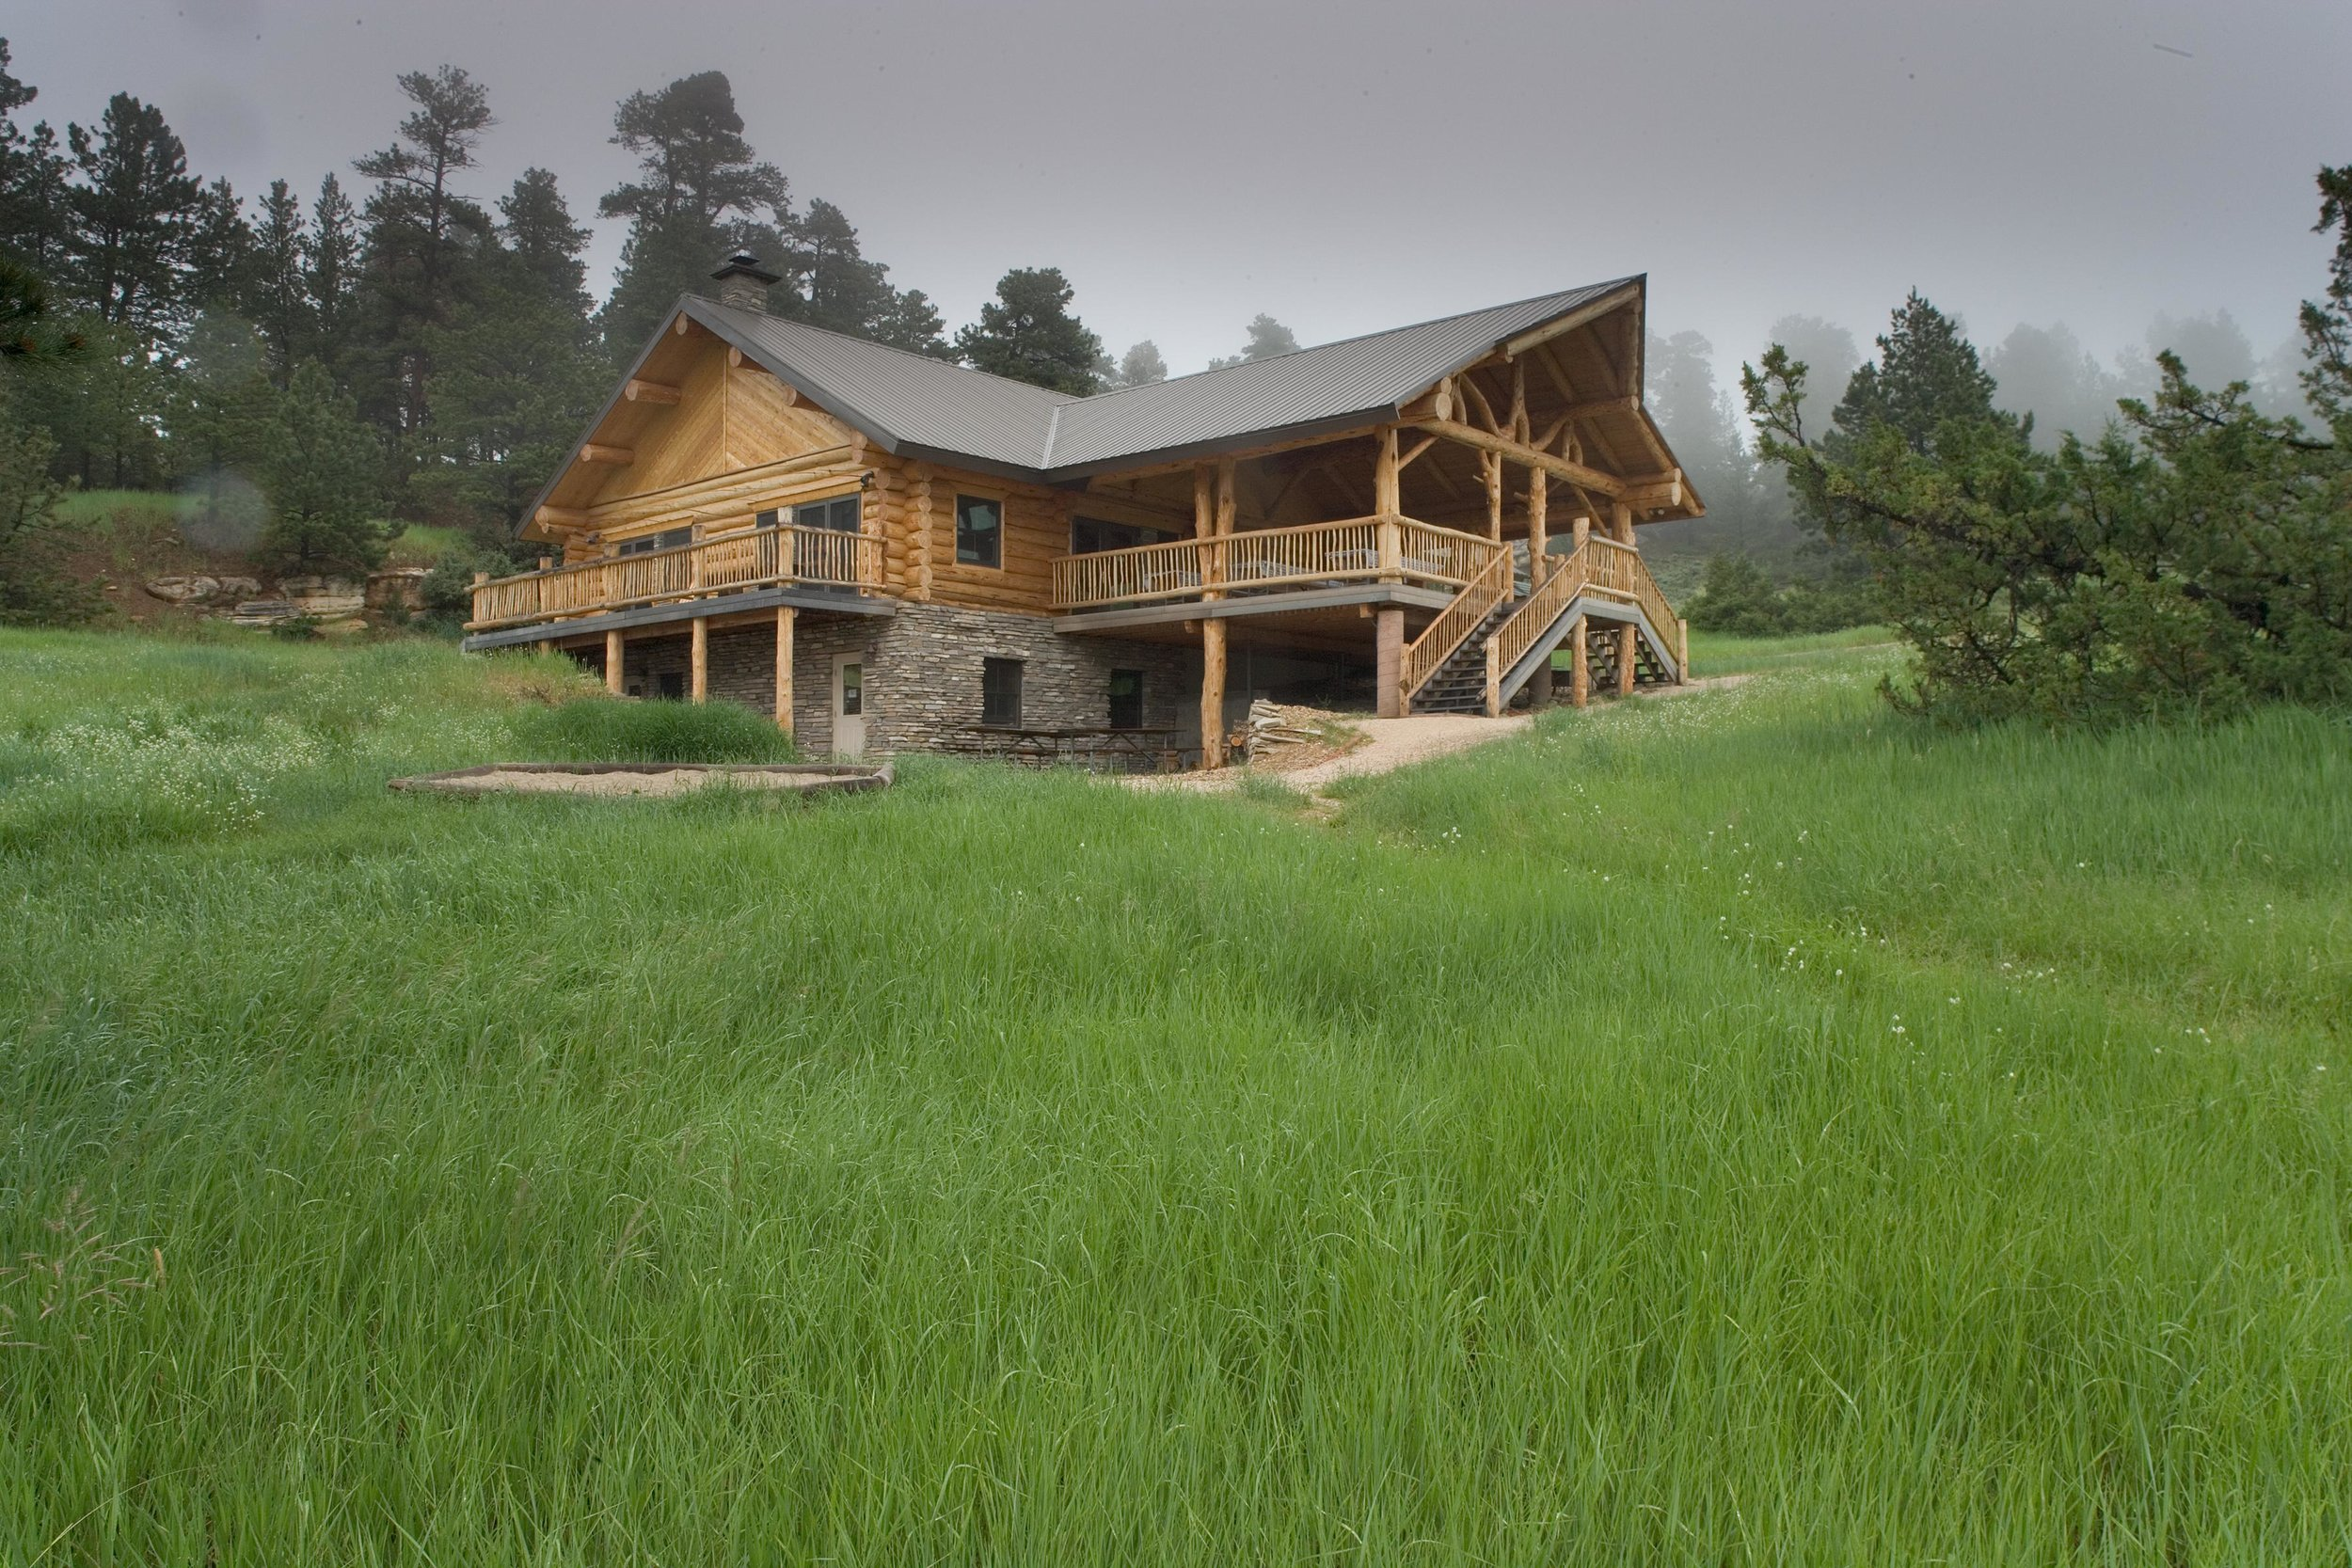 One Wild Week in Wyoming: Auction Package to Benefit Hawaiian Islands Land Trust